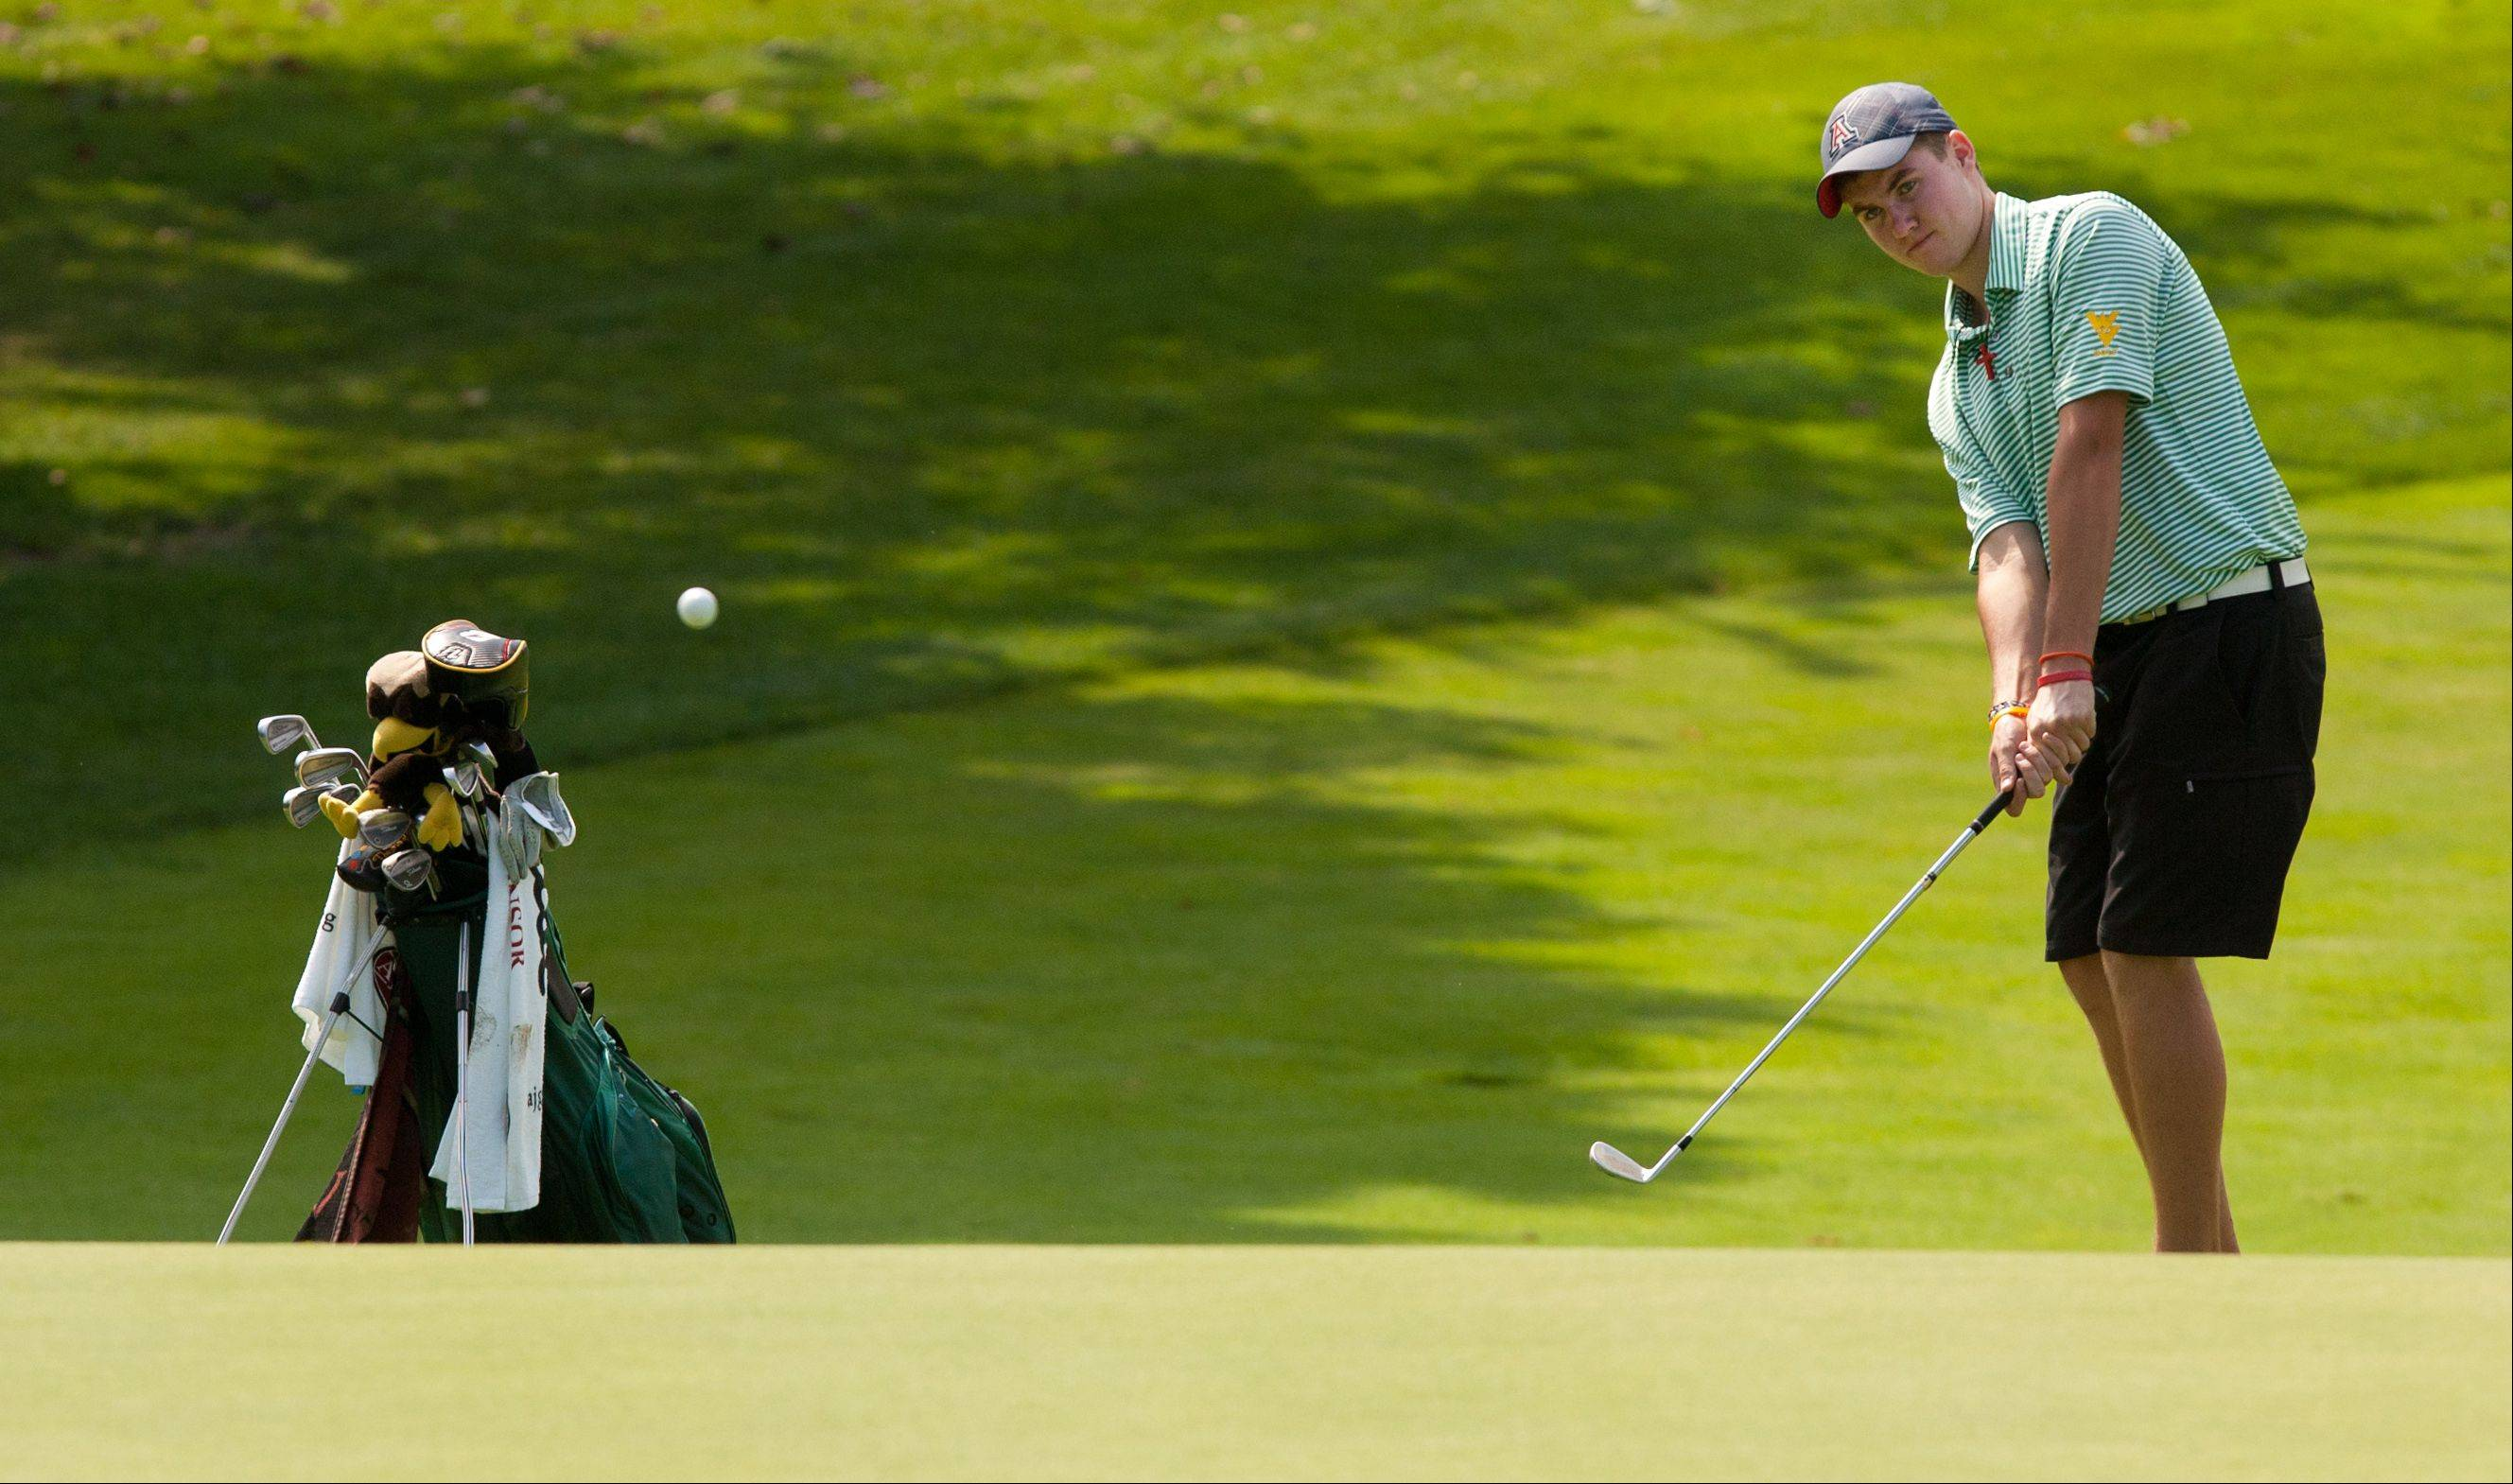 Jason Marrs of Waubonsie Valley chips towards the green during the 2013 Vern McGonagle Memorial boys and girls golf invitational at the Naperville Country Club.